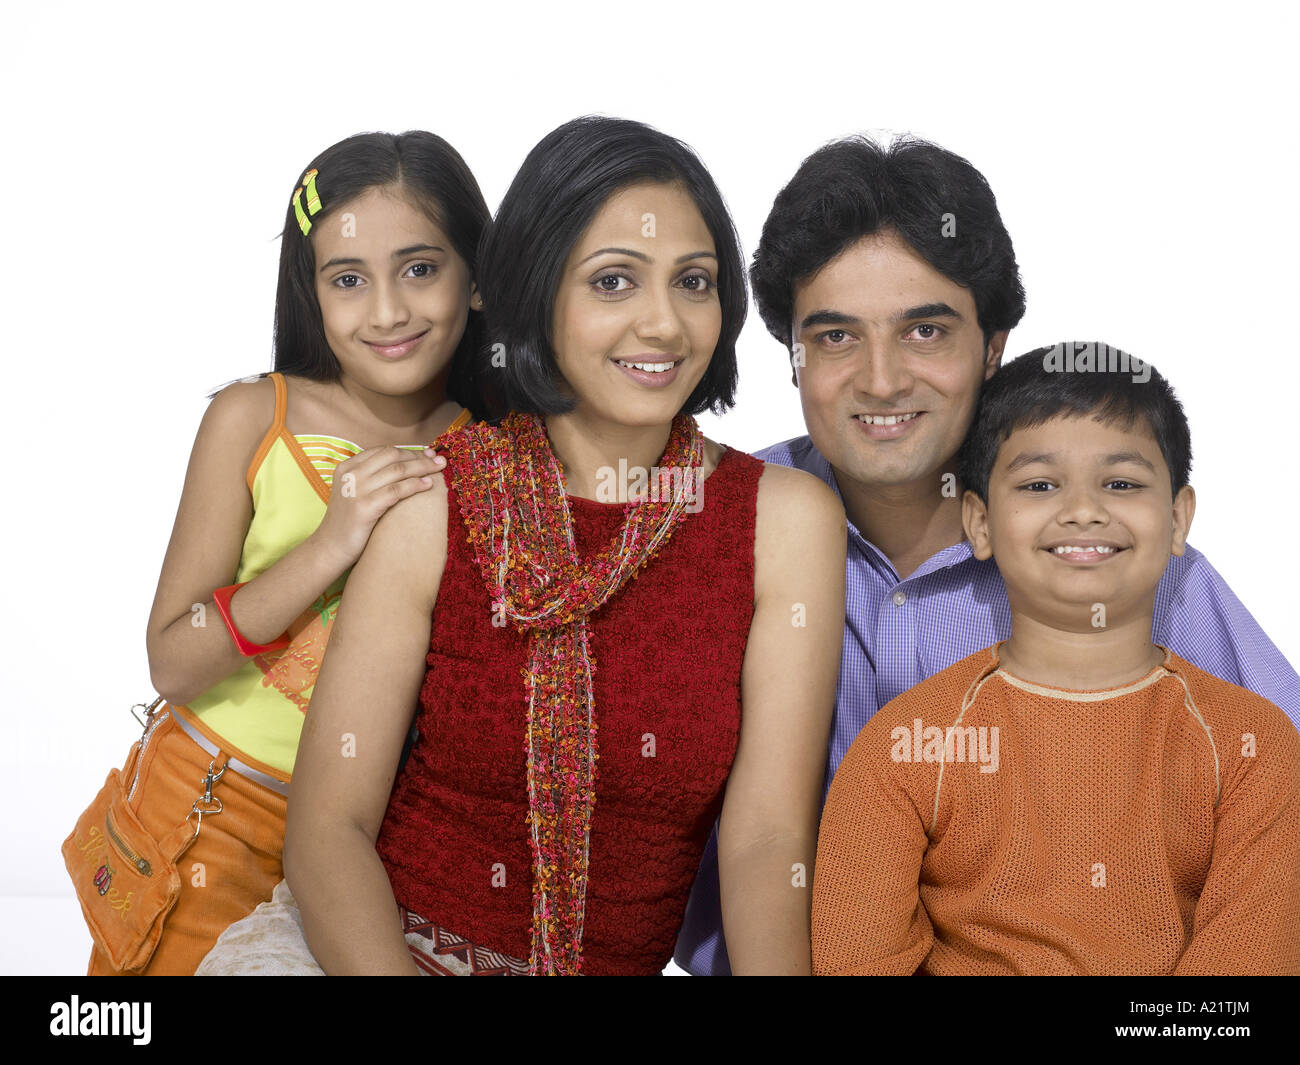 south asian indian families in america essay India has played a major role in the development of south asia as a region of resources,technology and even as a power to some extent however,at several occasions the actions of our nation have been seen as steps taken towards the goal of becoming the regional hegemon hegemony.